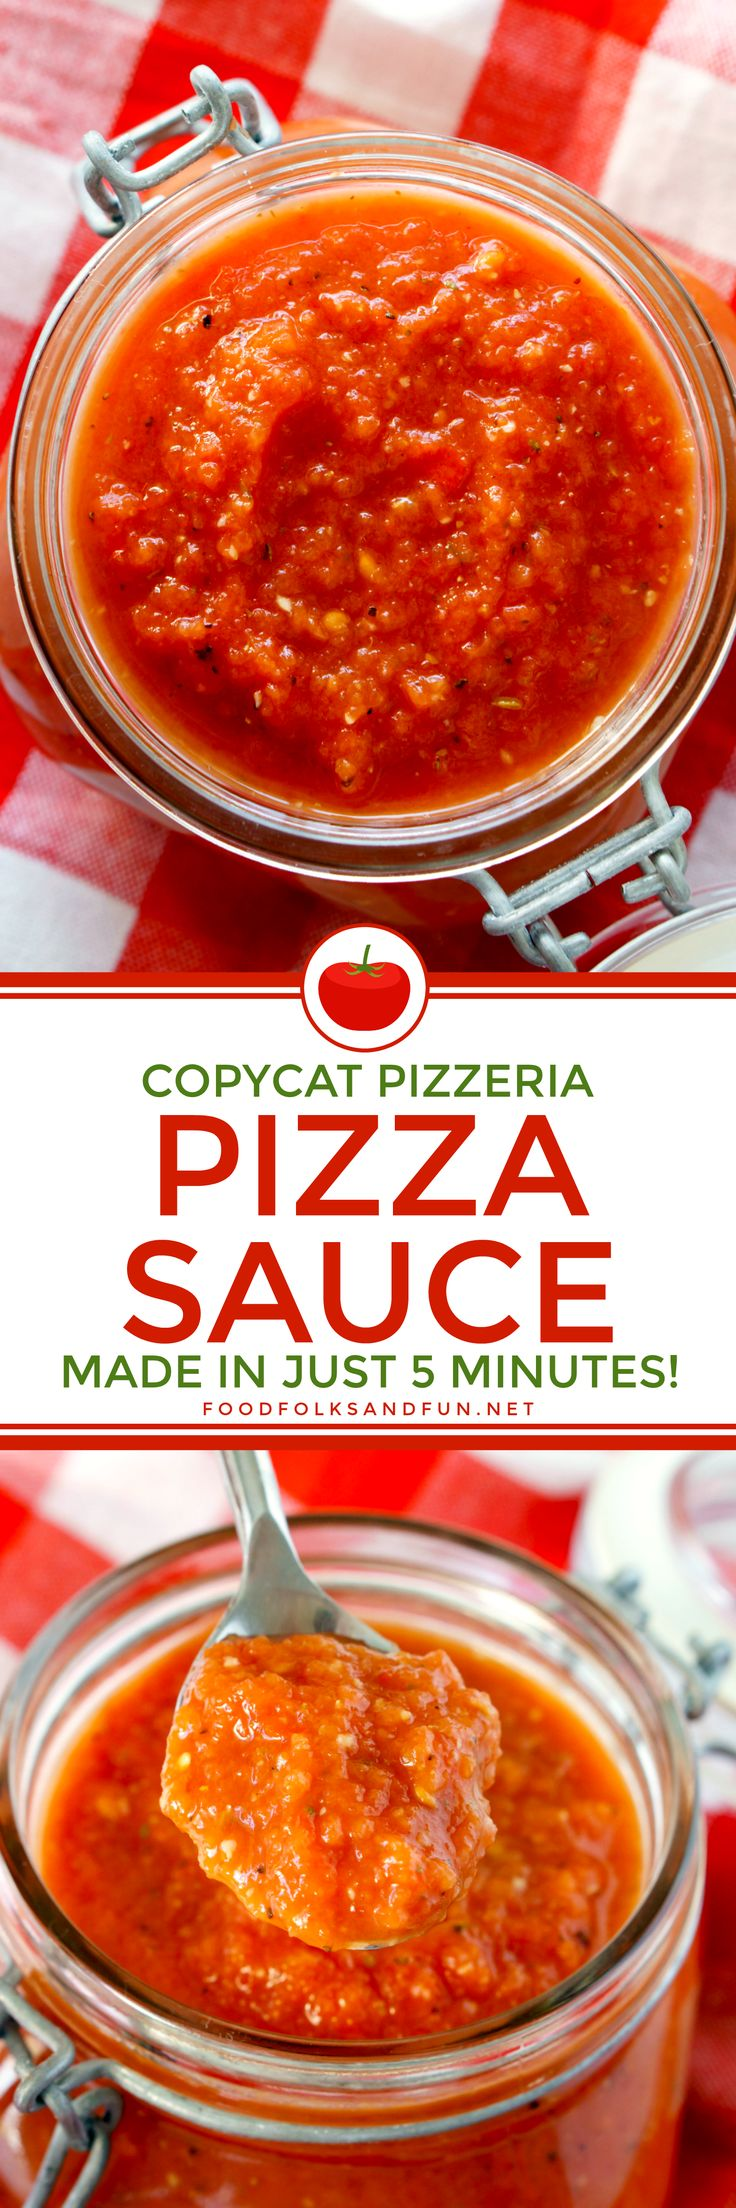 This Copycat Pizzeria Pizza Sauce Recipe tastes like it came from your favorite pizzeria. It's SO easy to make, all you need is 5 minutes and a blender!